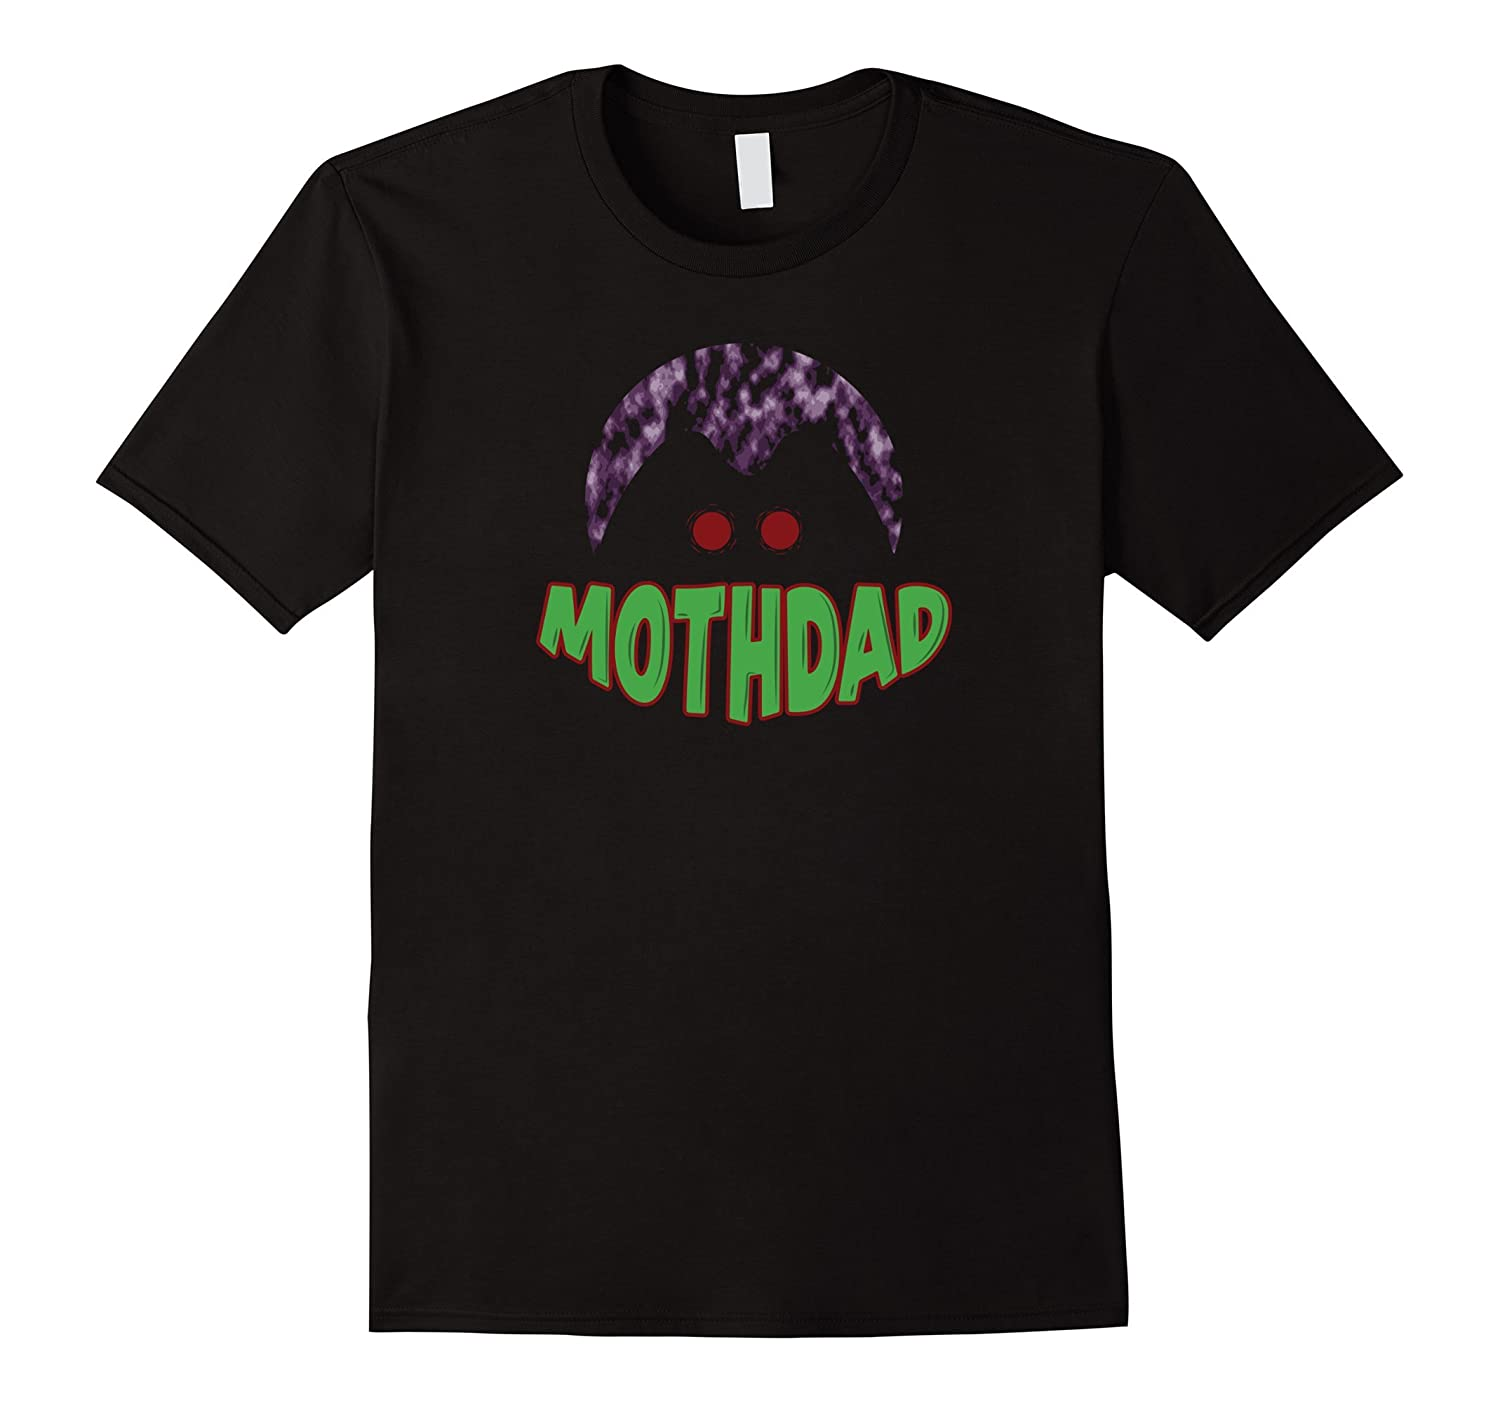 Mens Mothman Mothdad Dad T-Shirt-Art